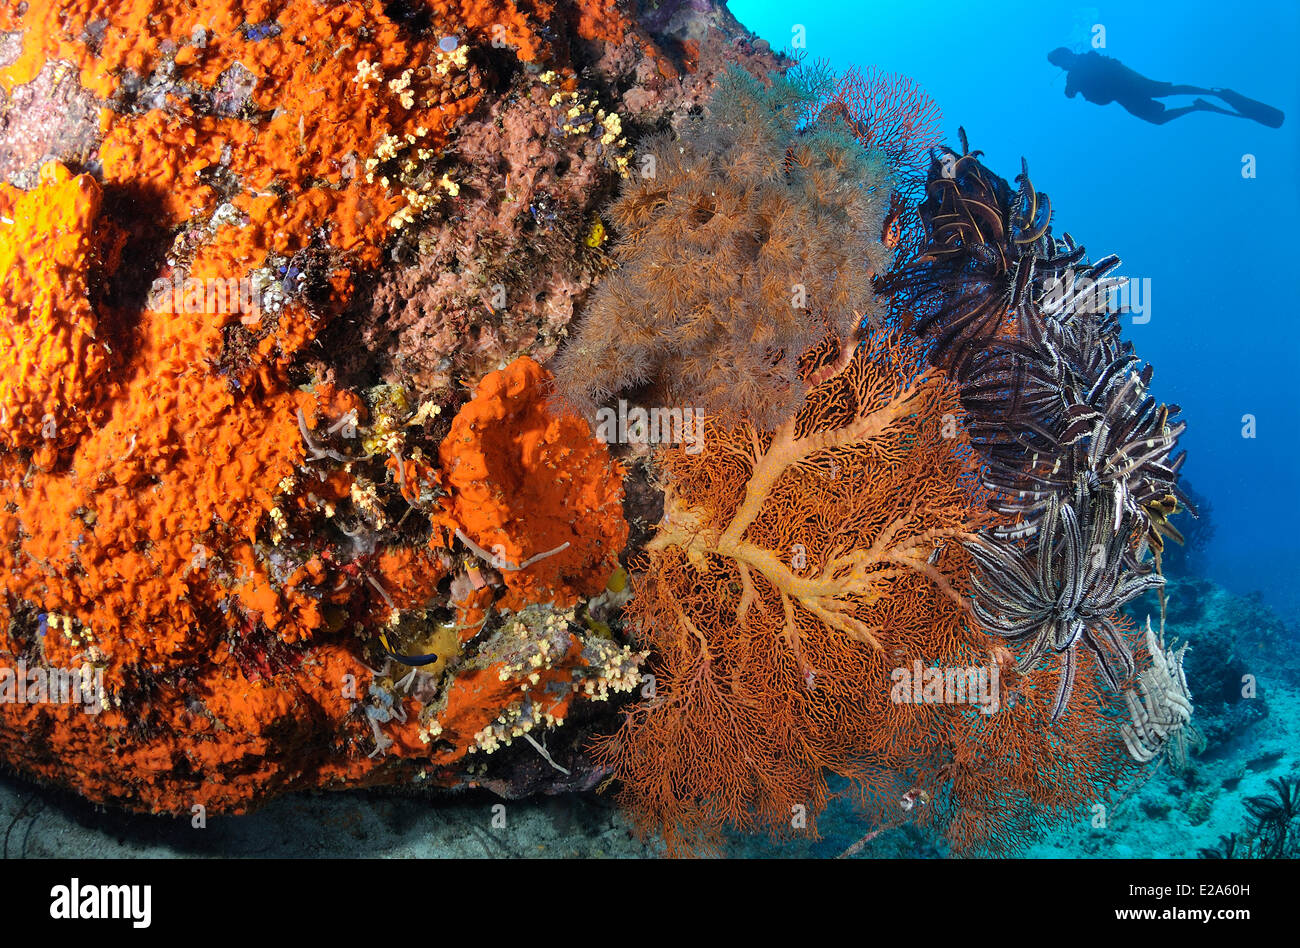 Philippines, Palawan island, a coral reef Stock Photo